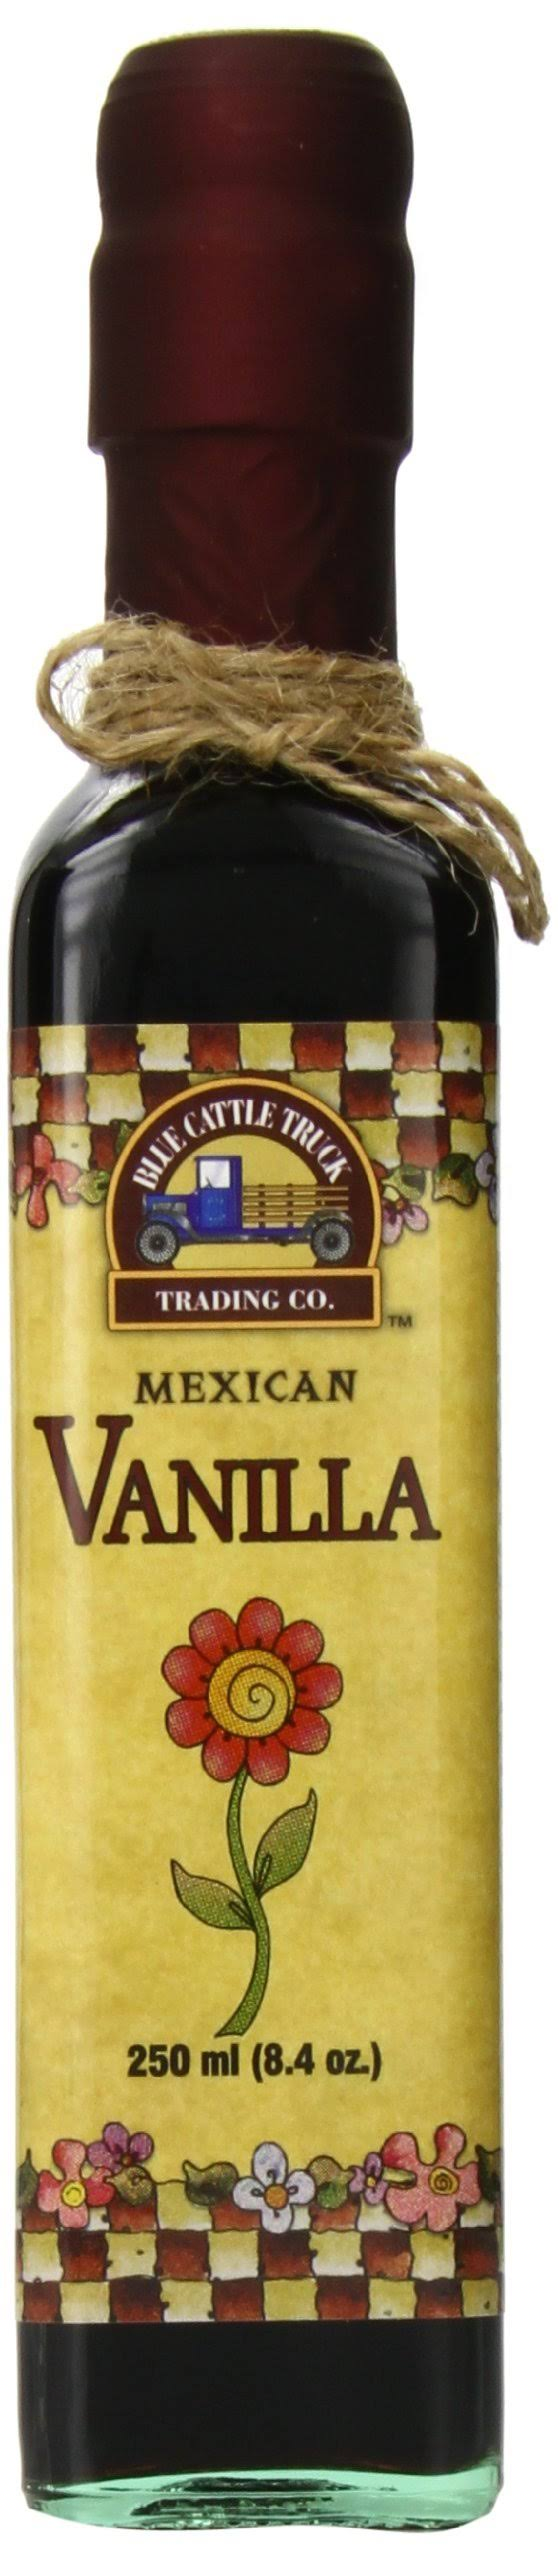 Blue Cattle Truck Trading Original Small Mexican Extract - Vanilla, 8.4oz